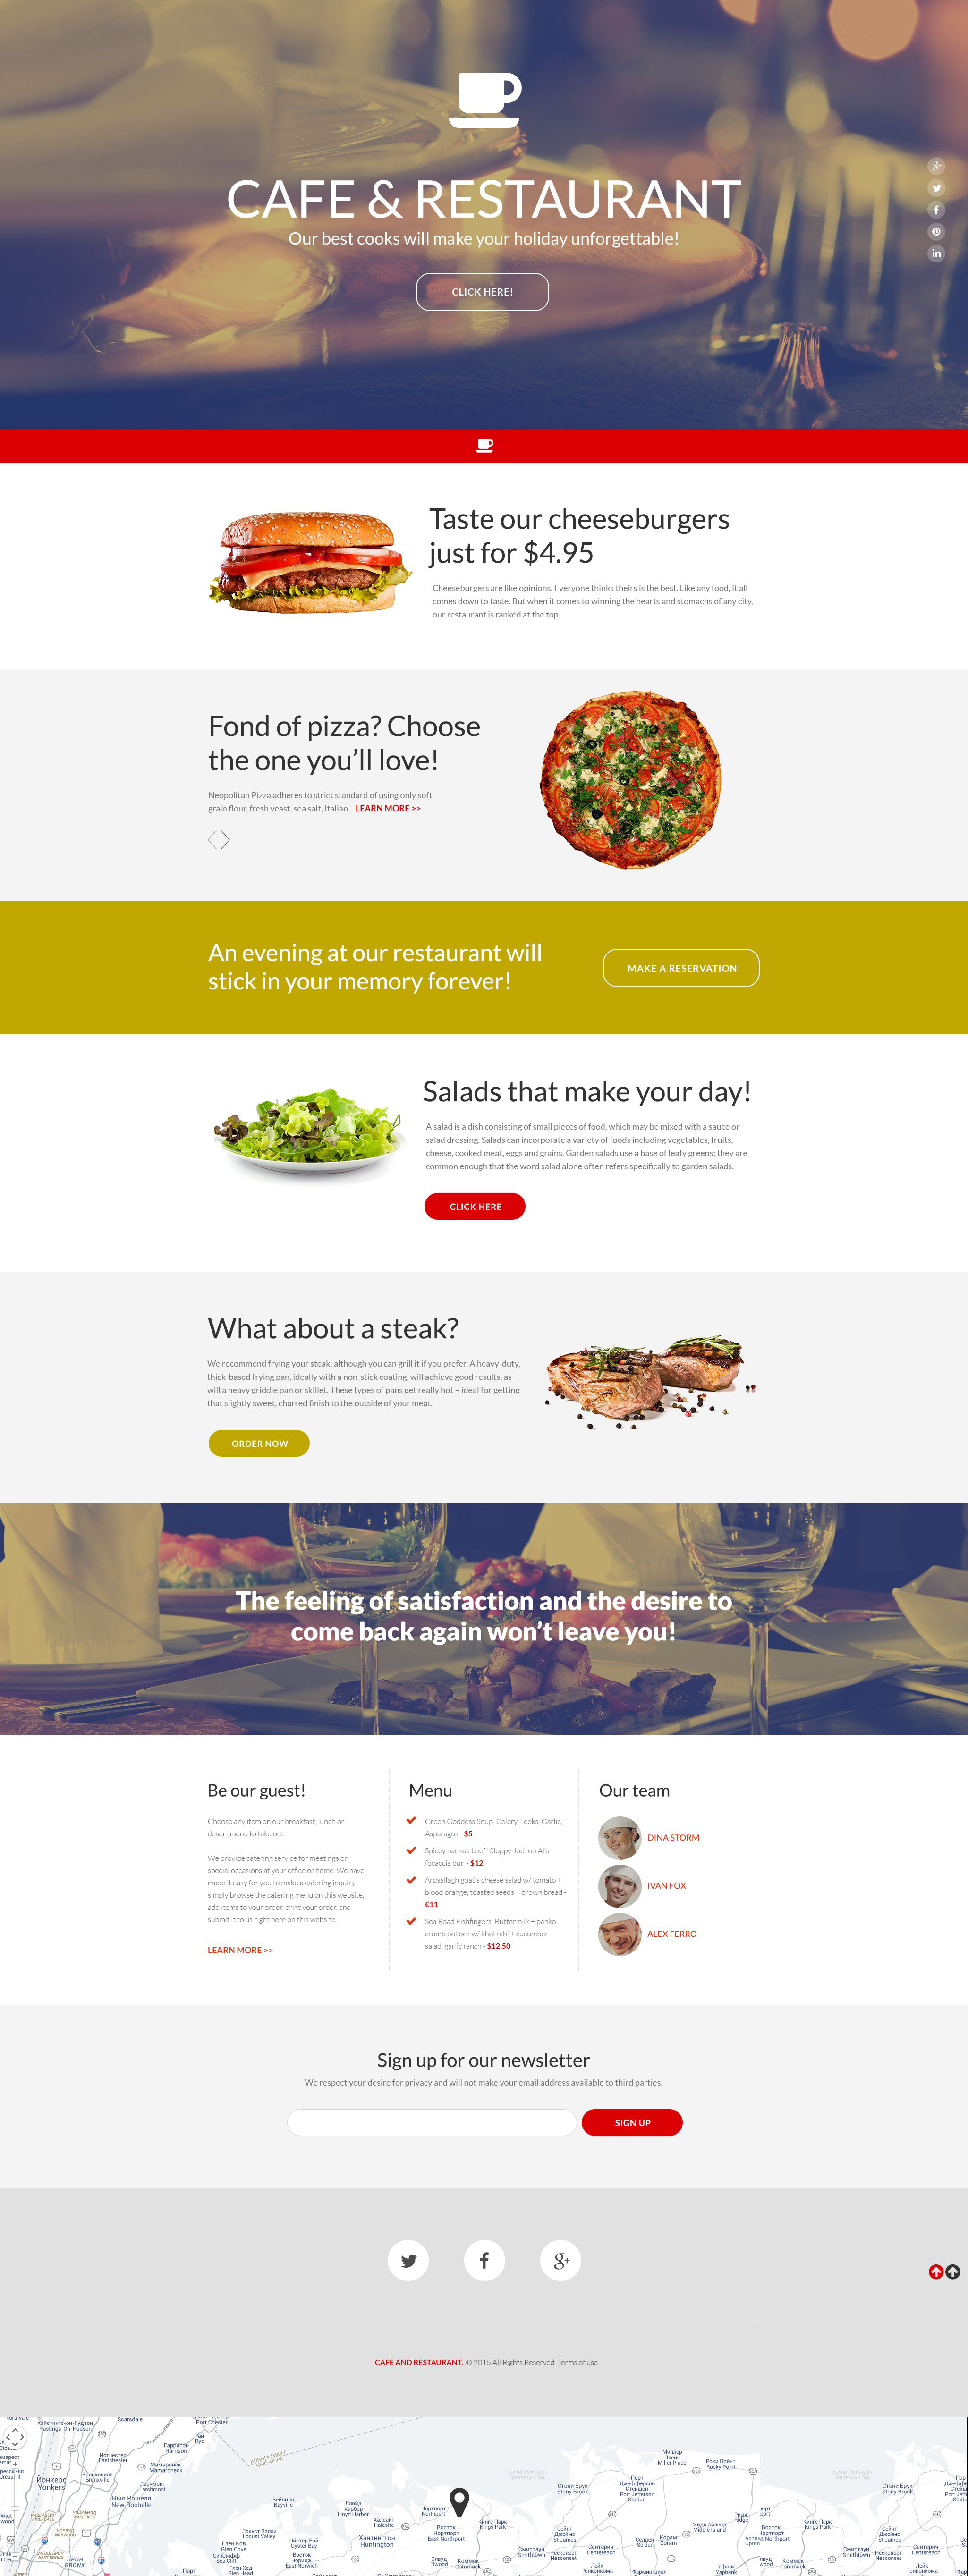 Cafe And Restaurant Responsive Landing Page Template 55463